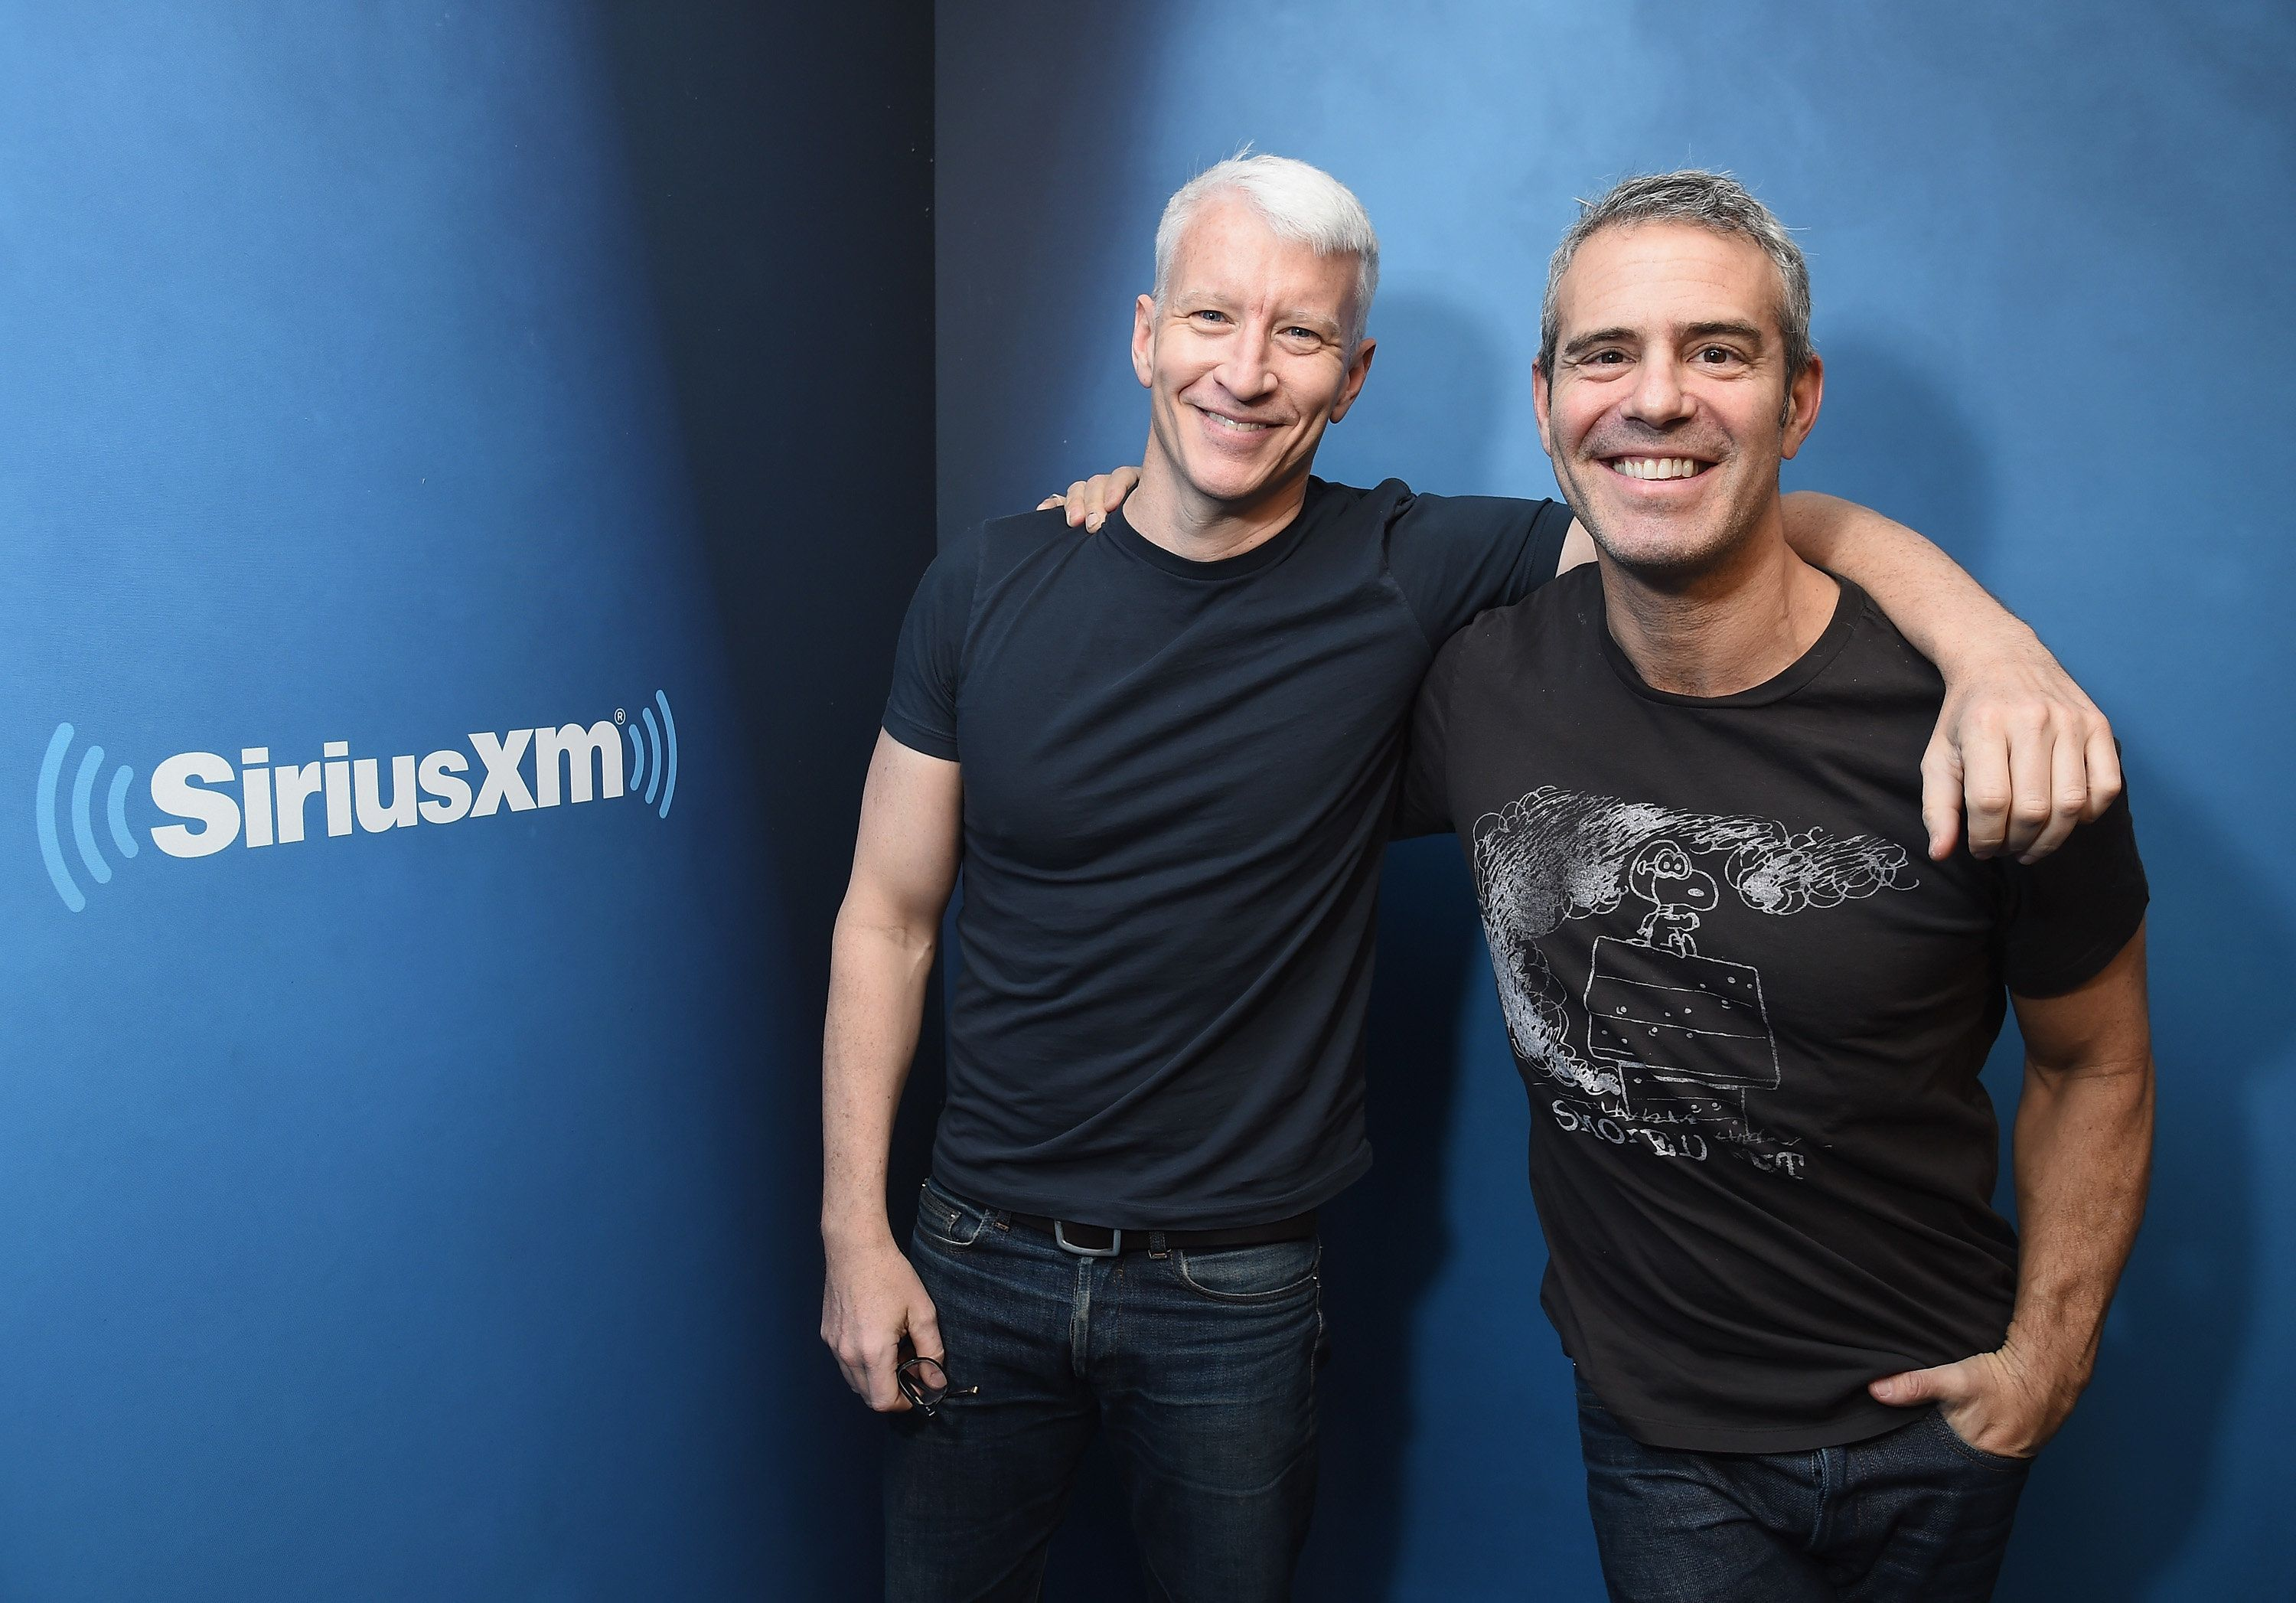 NEW YORK, NY - JANUARY 13:  Journalist Anderson Cooper (L) and host Andy Cohen at SiriusXM Studios on January 13, 2017 in New York City. (Photo by Michael Loccisano/Getty Images)